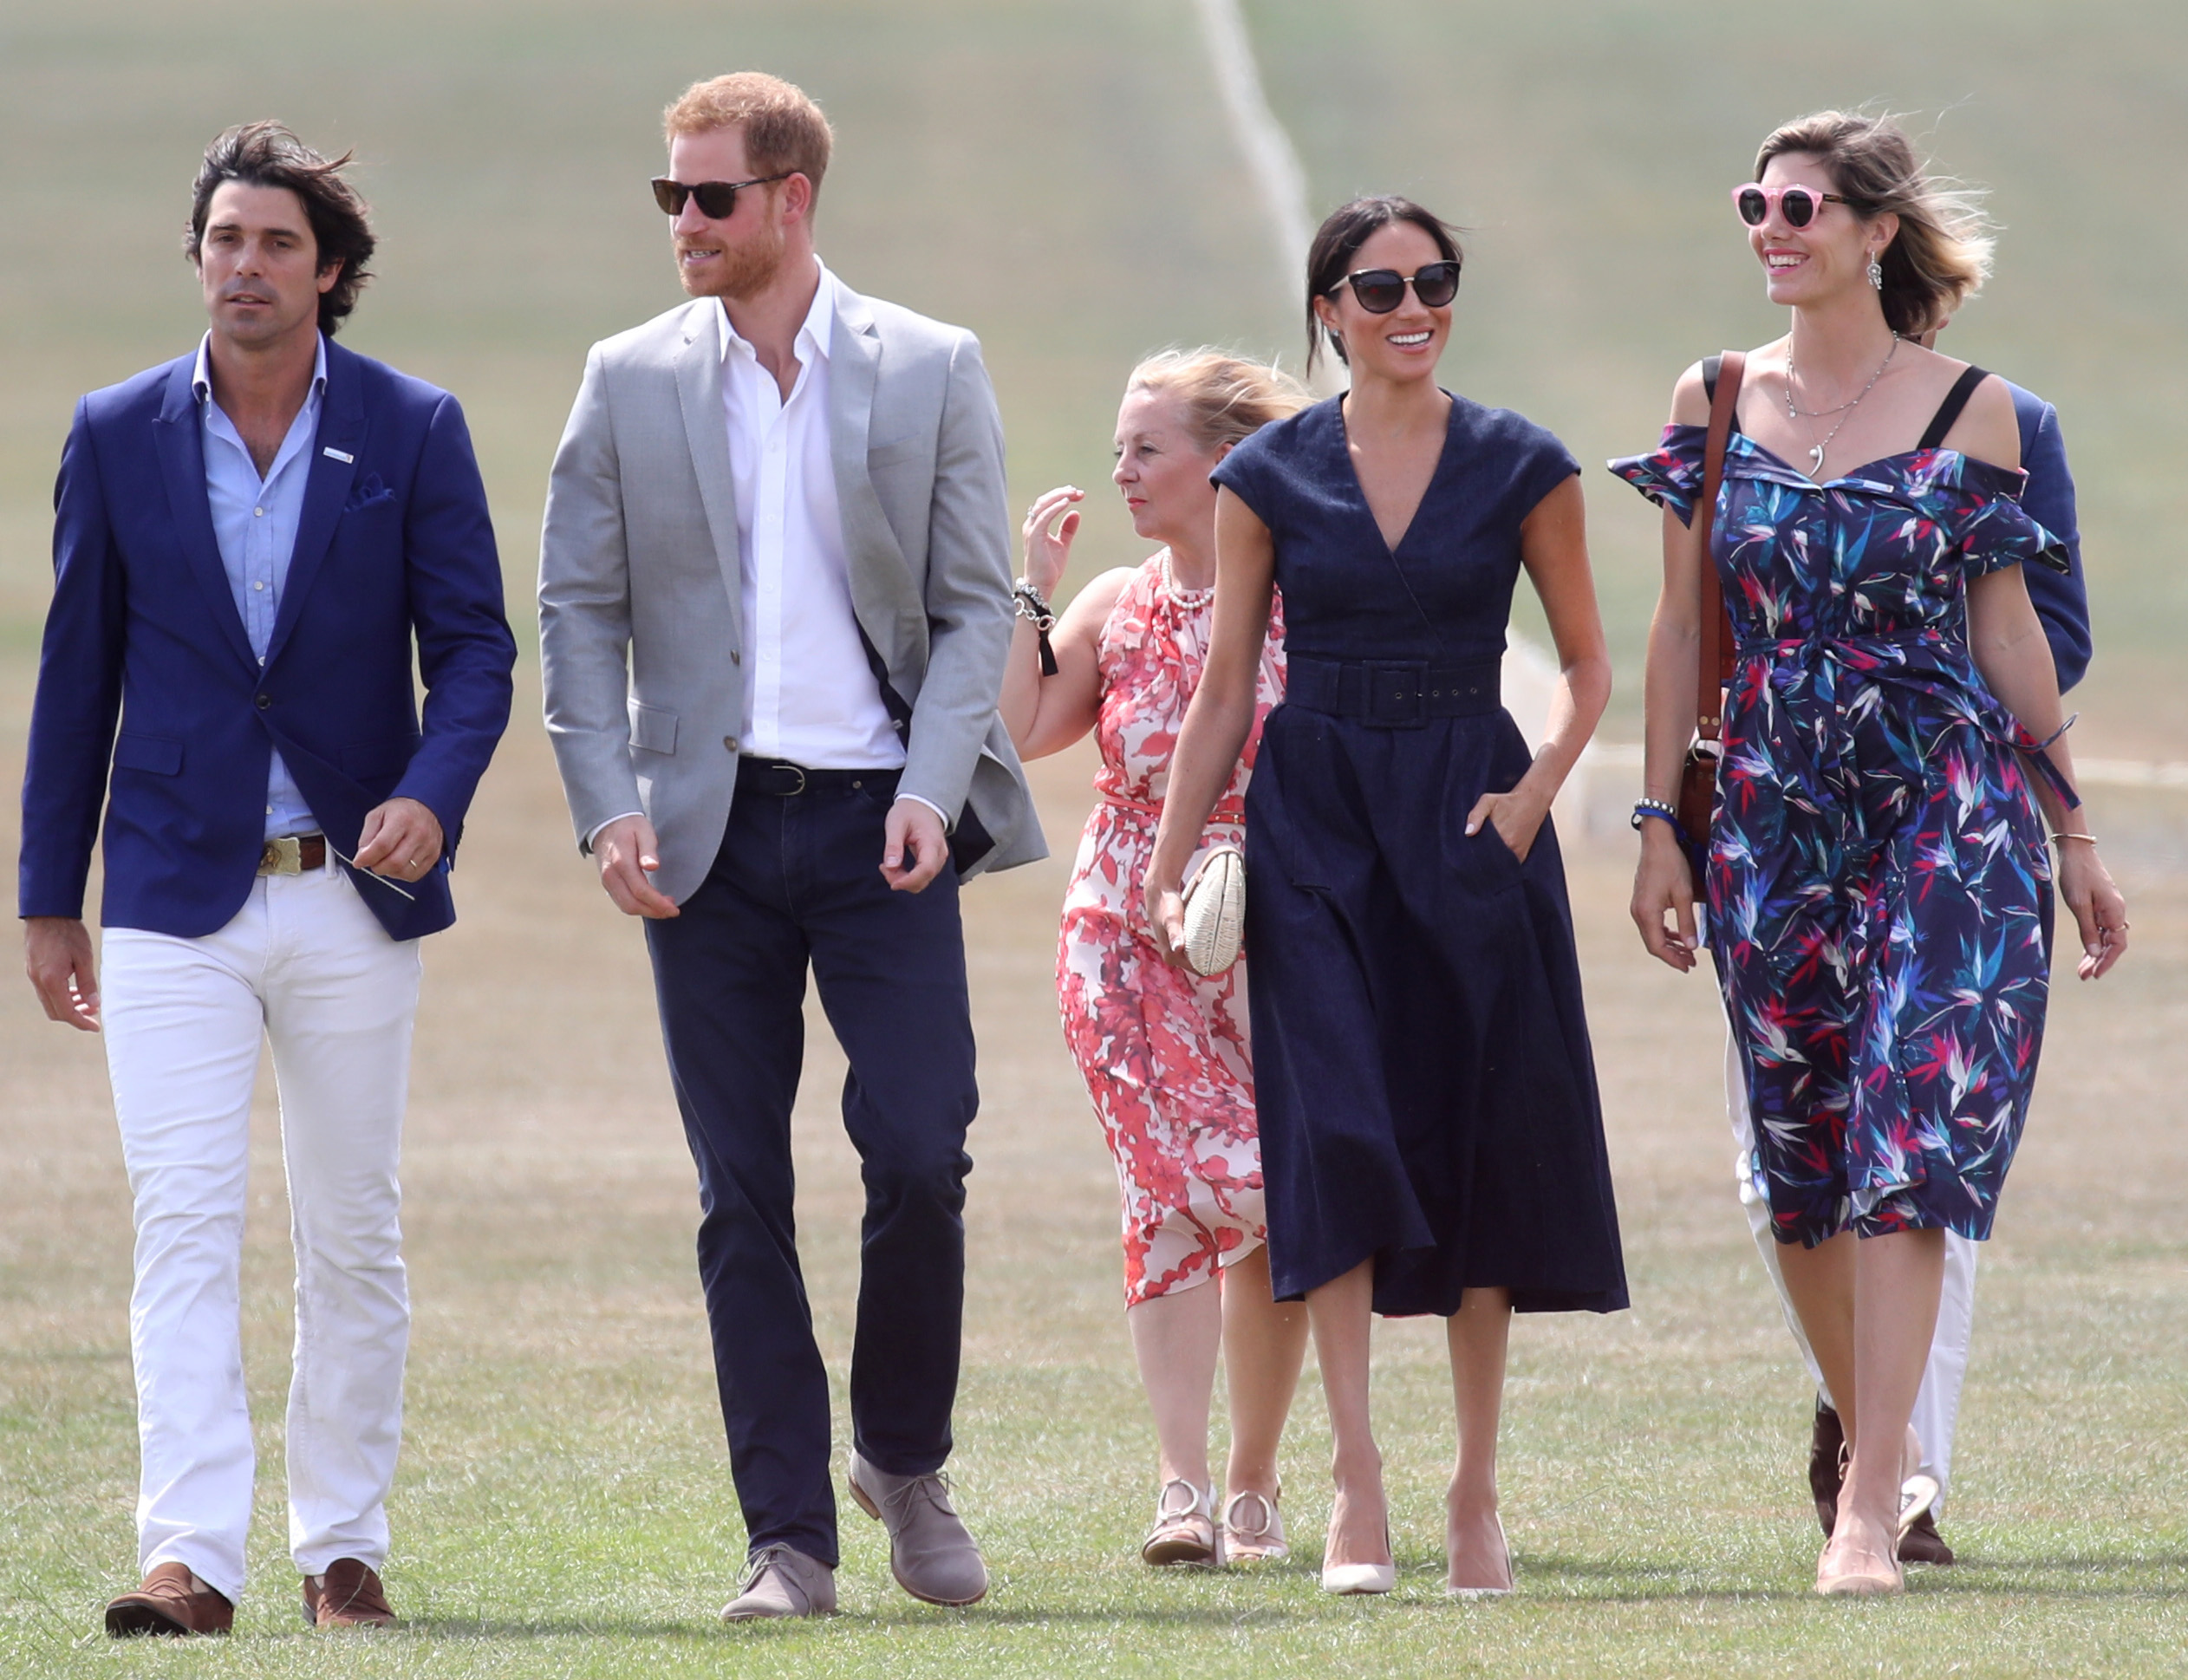 WINDSOR, ENGLAND - JULY 26:  (L-R) Sentebale Ambassador Nacho Figuares, Prince Harry, Duke of Sussex, Sentebale CEO Cathy Ferrier, Meghan Duchess of Sussex and Delfina Figueras arrive for the Sentebale Polo 2018 held at the Royal County of Berkshire Polo Club on July 26, 2018 in Windsor, England.  (Photo by Chris Jackson/Getty Images)